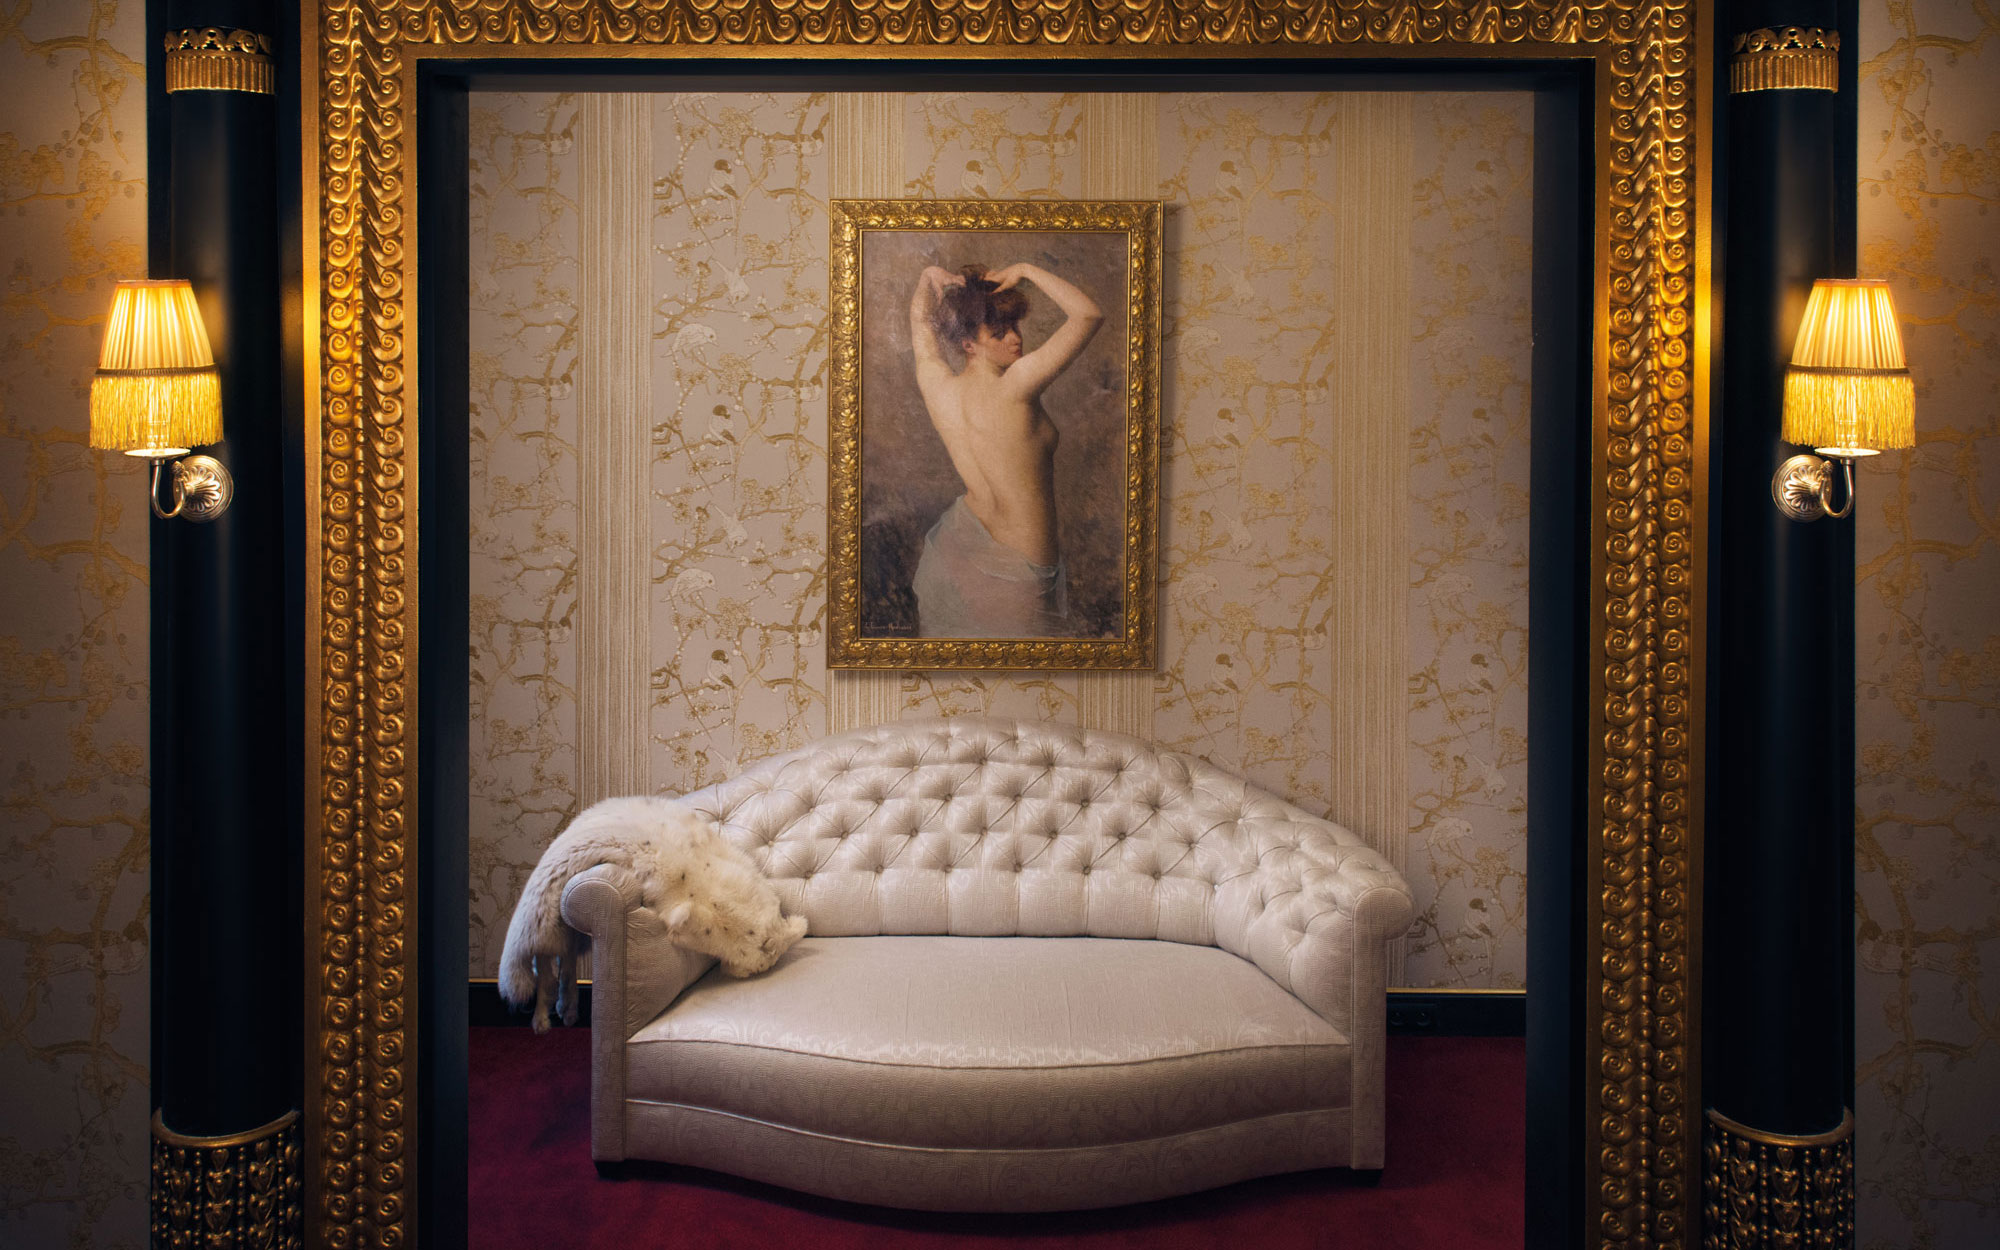 New to Paris: a Vampy Hotel With Design Steeped in Sex: Liane de Pougy's salon